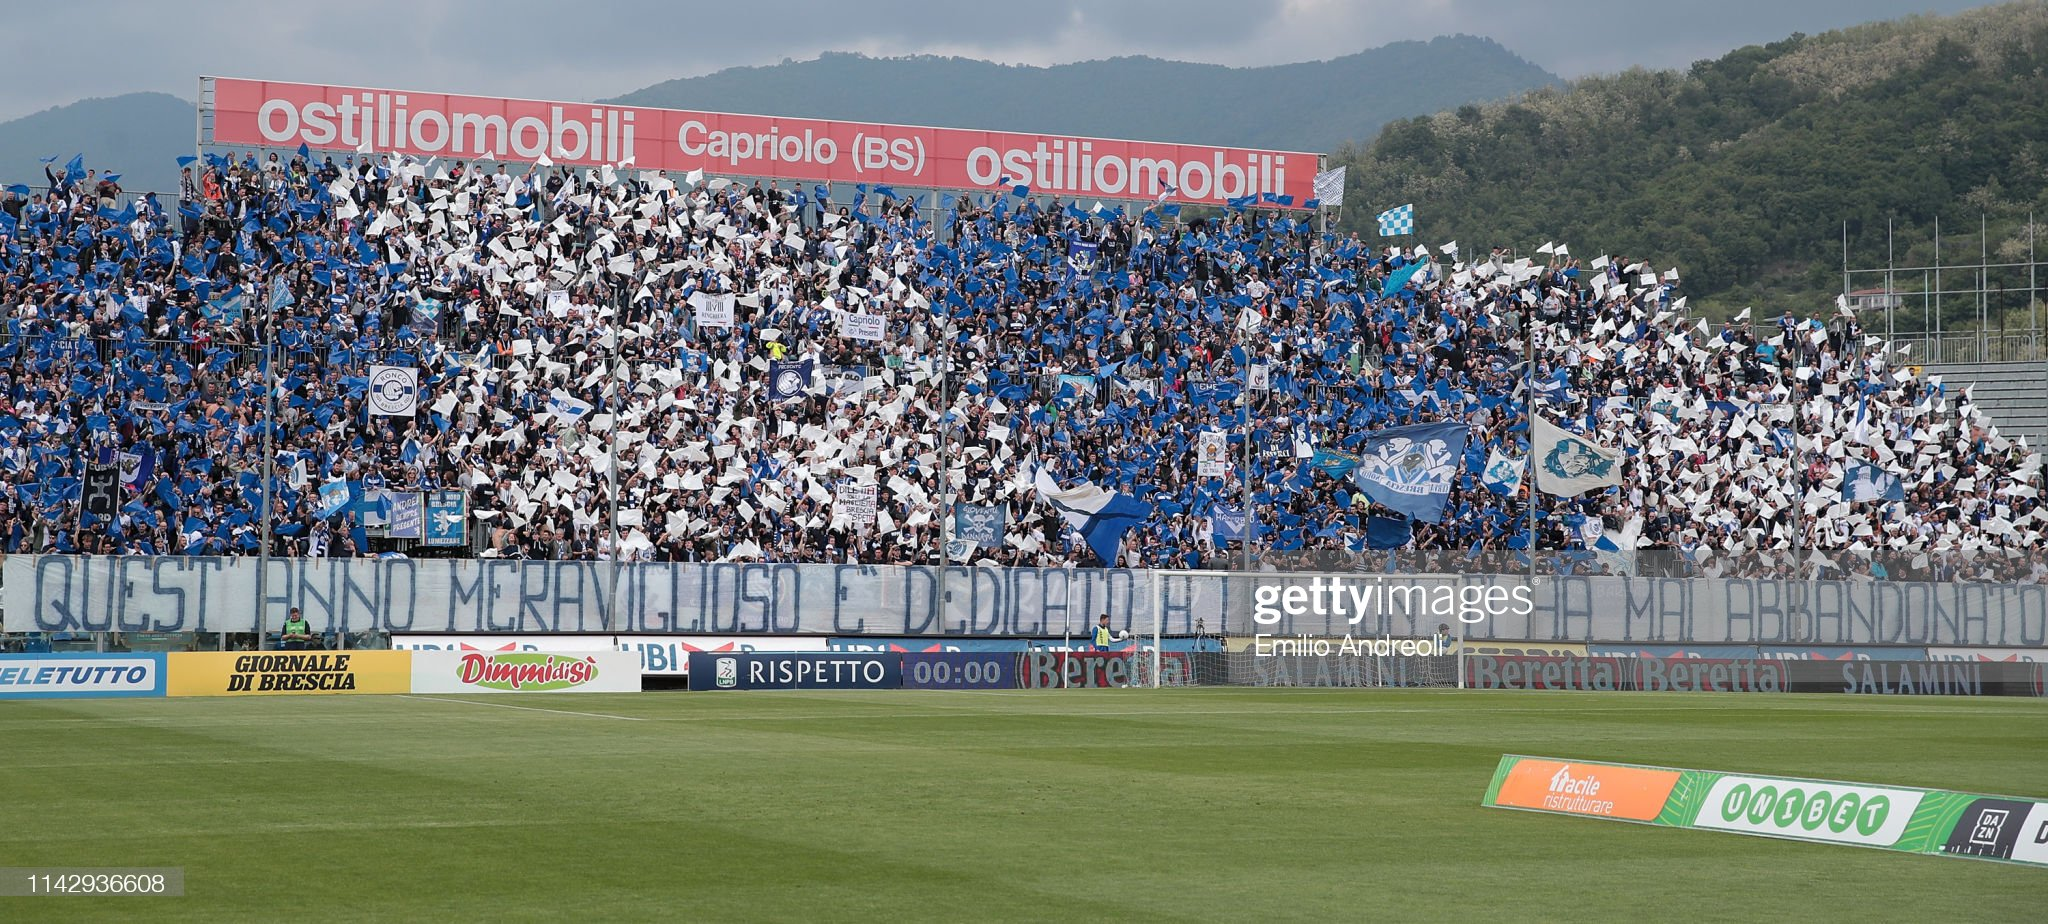 the-brescia-calcio-fans-show-their-support-during-the-serie-b-match-picture-id1142936608?s=2048x2048